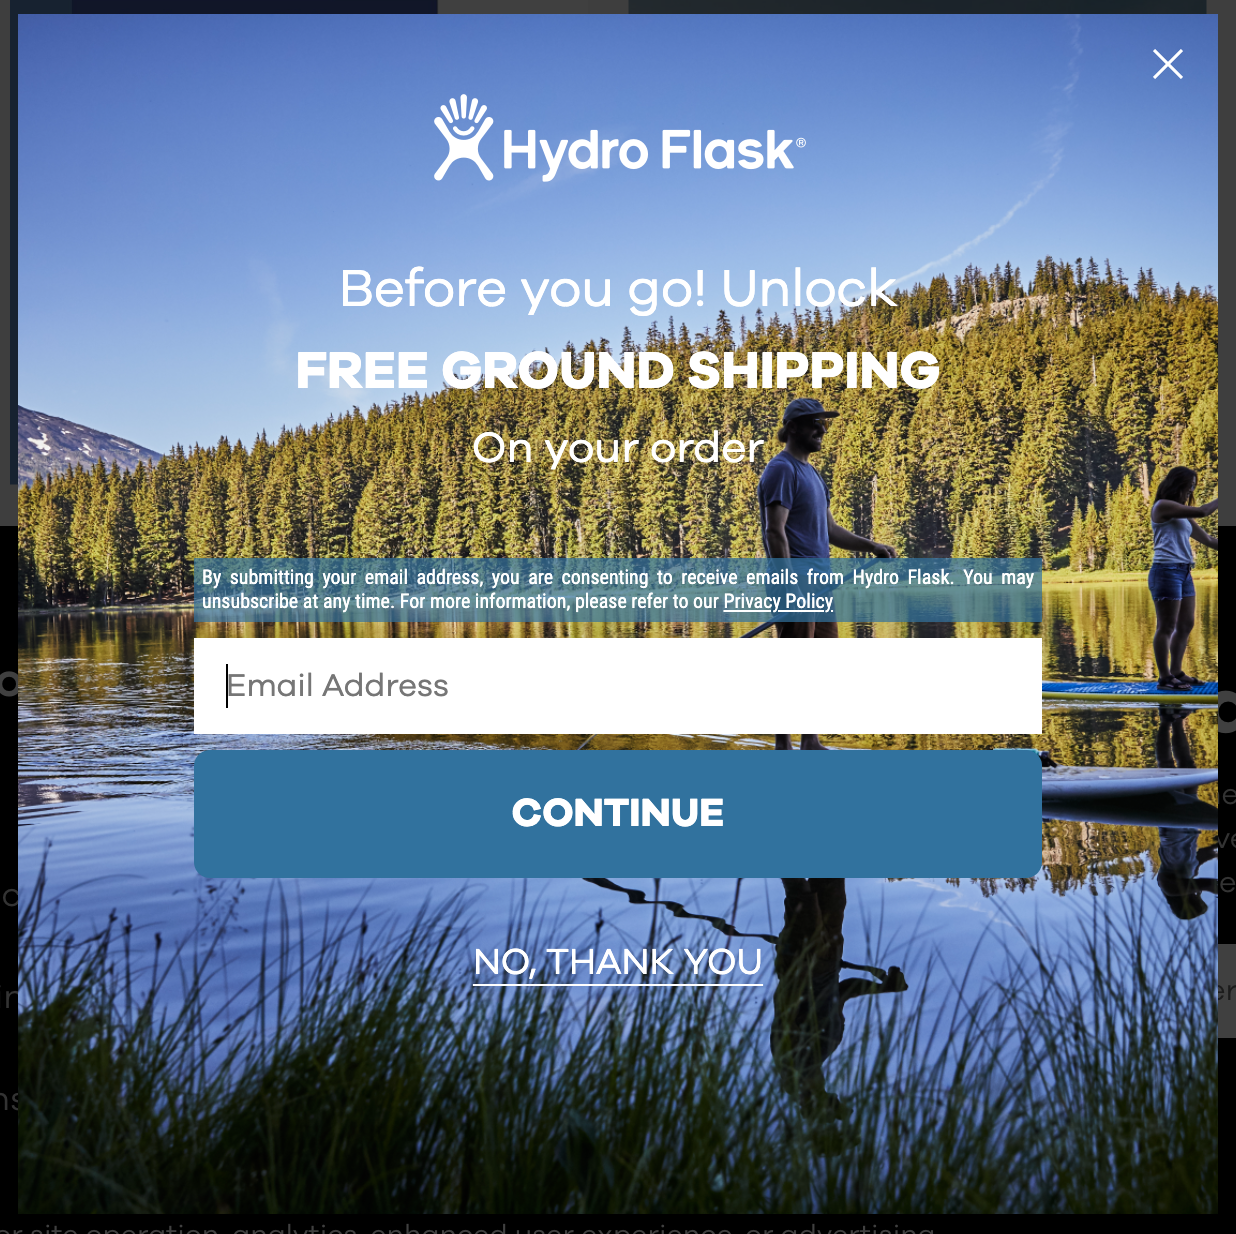 Hydroflask's email CTA